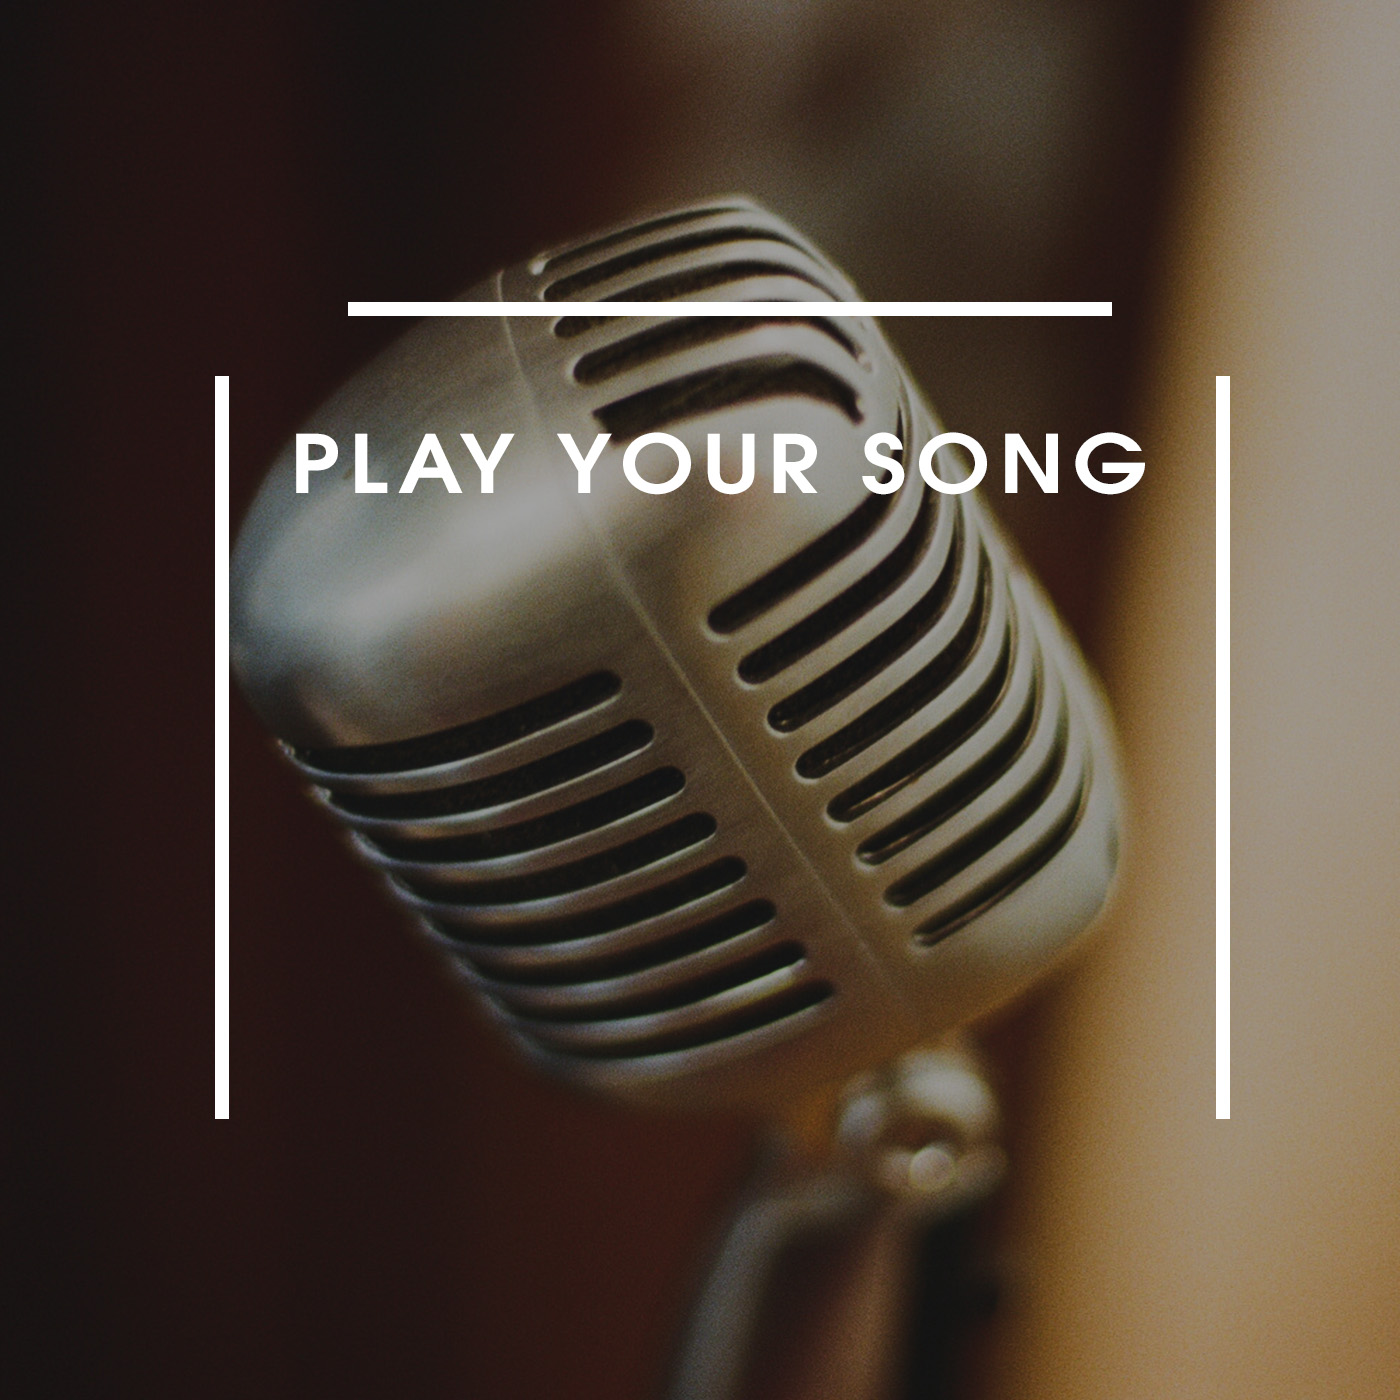 Play your song